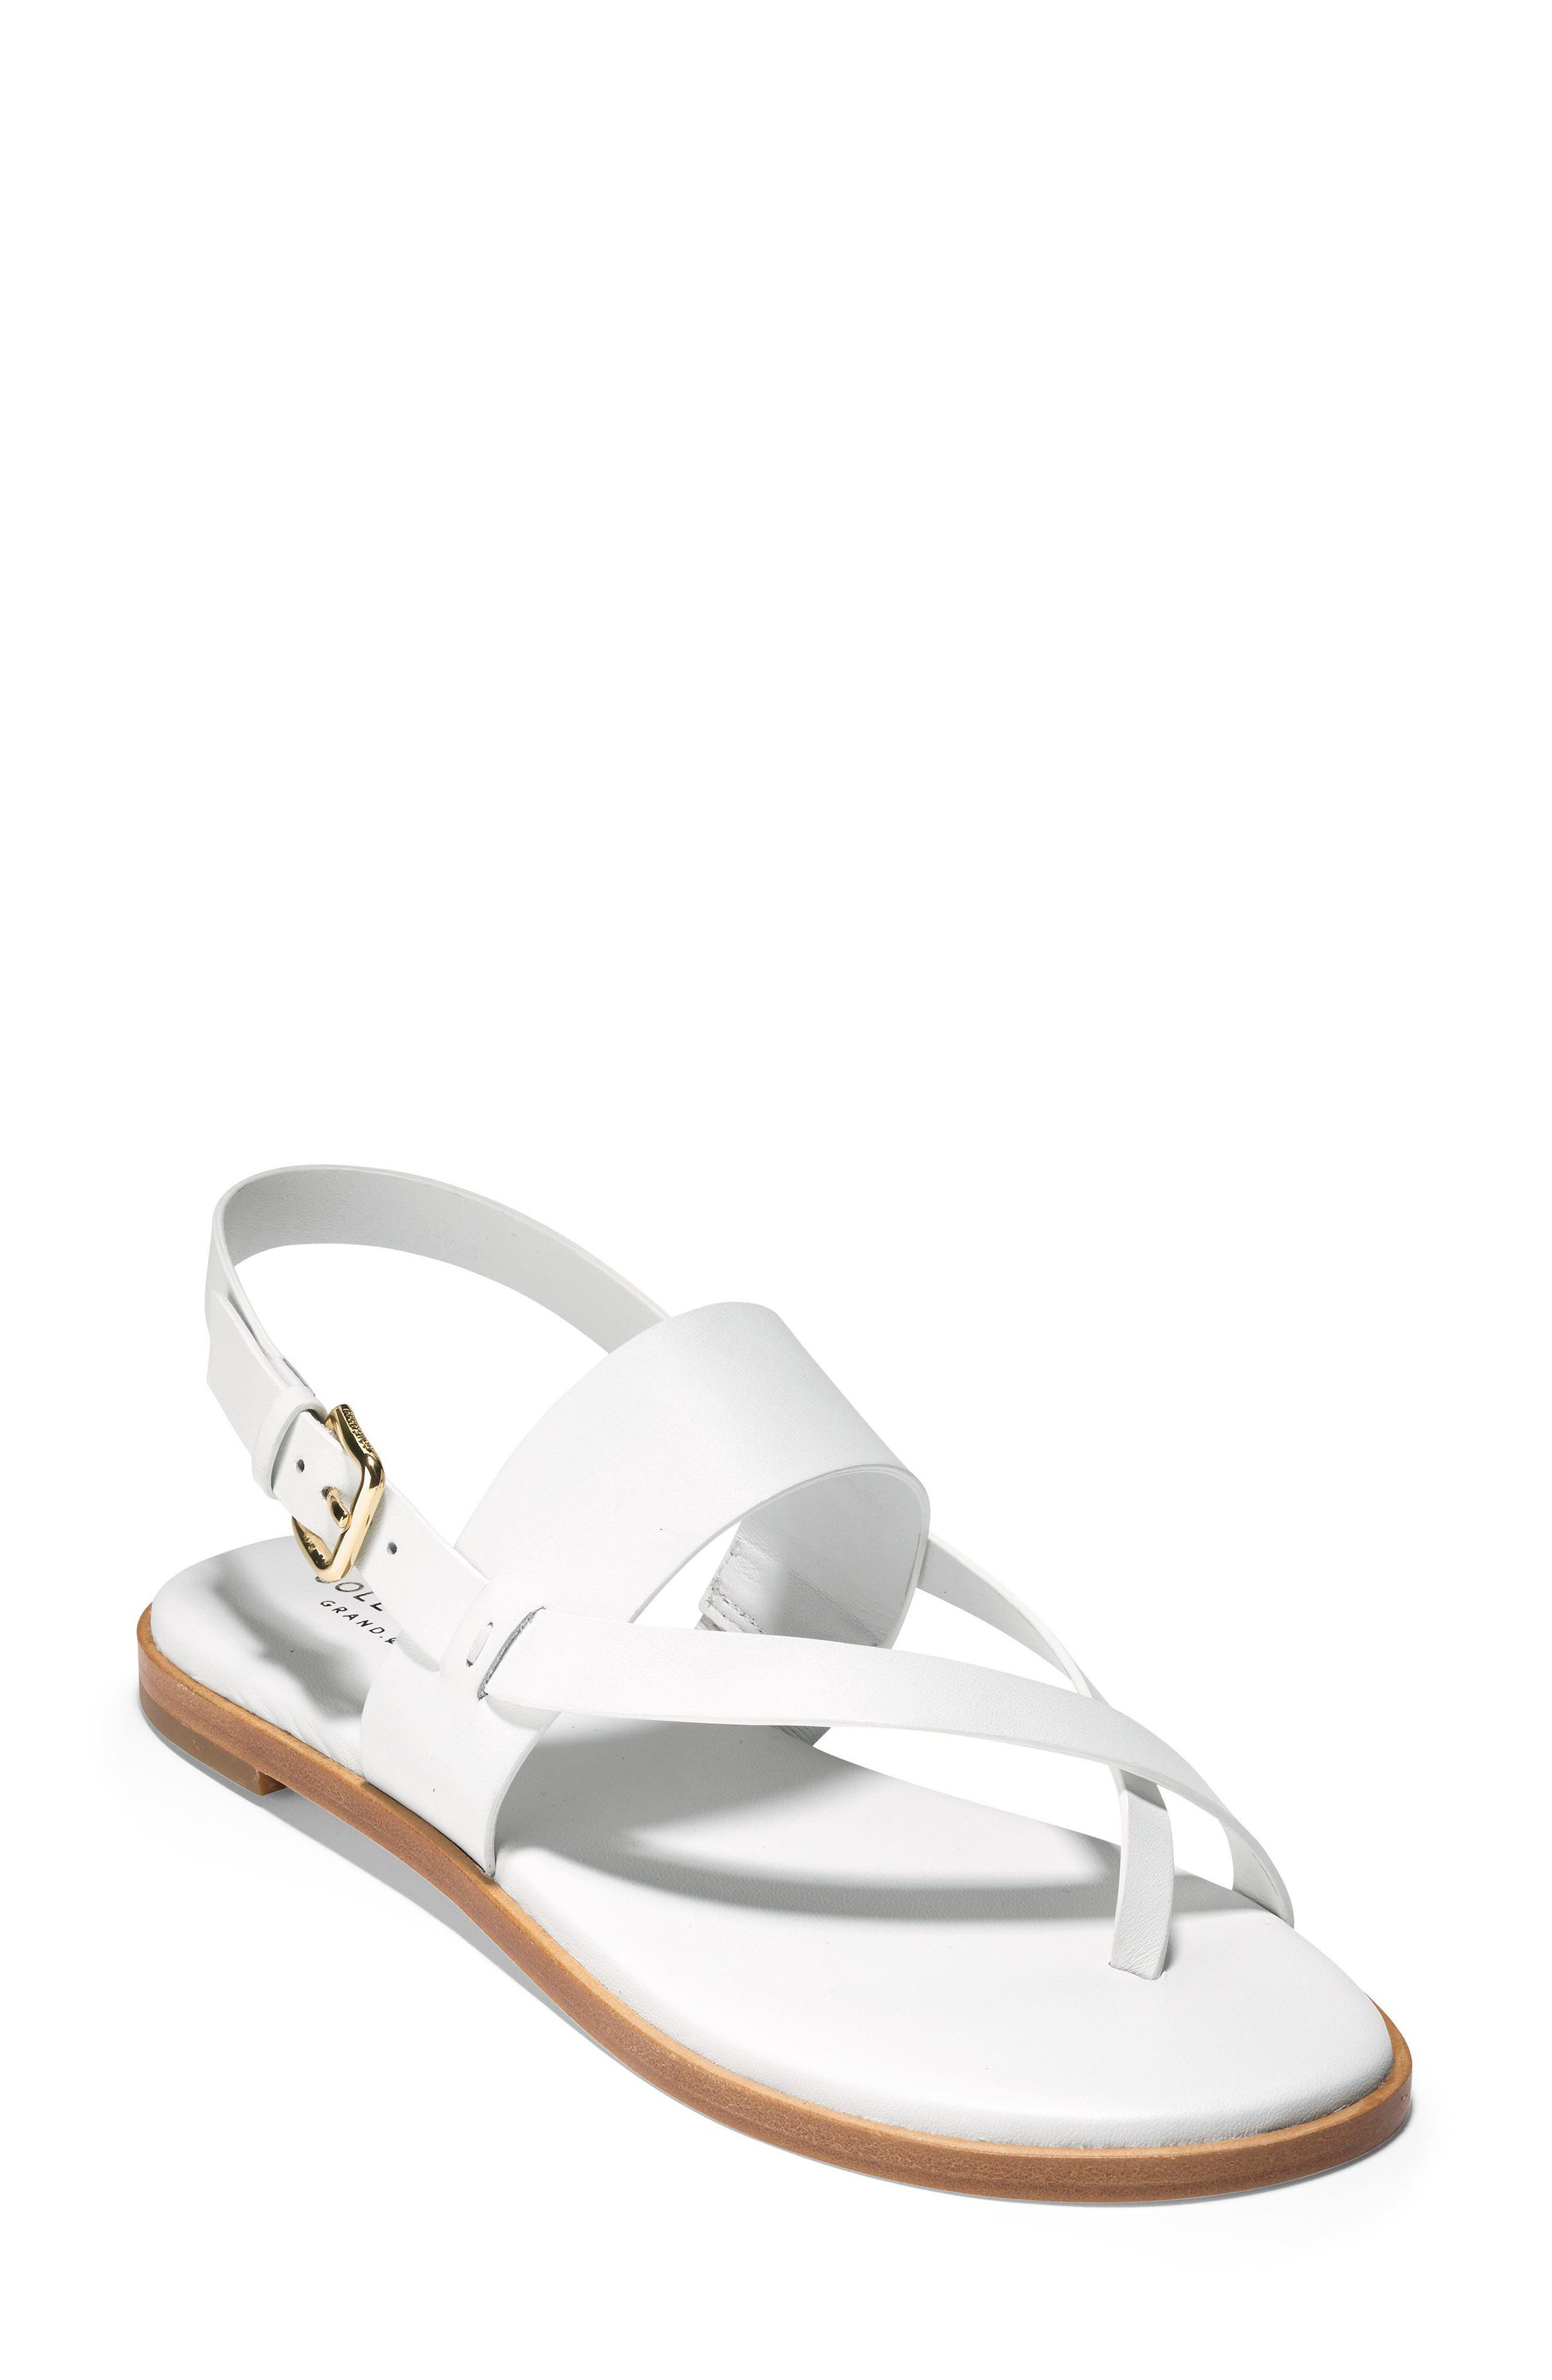 Anica Sandal,                         Main,                         color, WHITE LEATHER